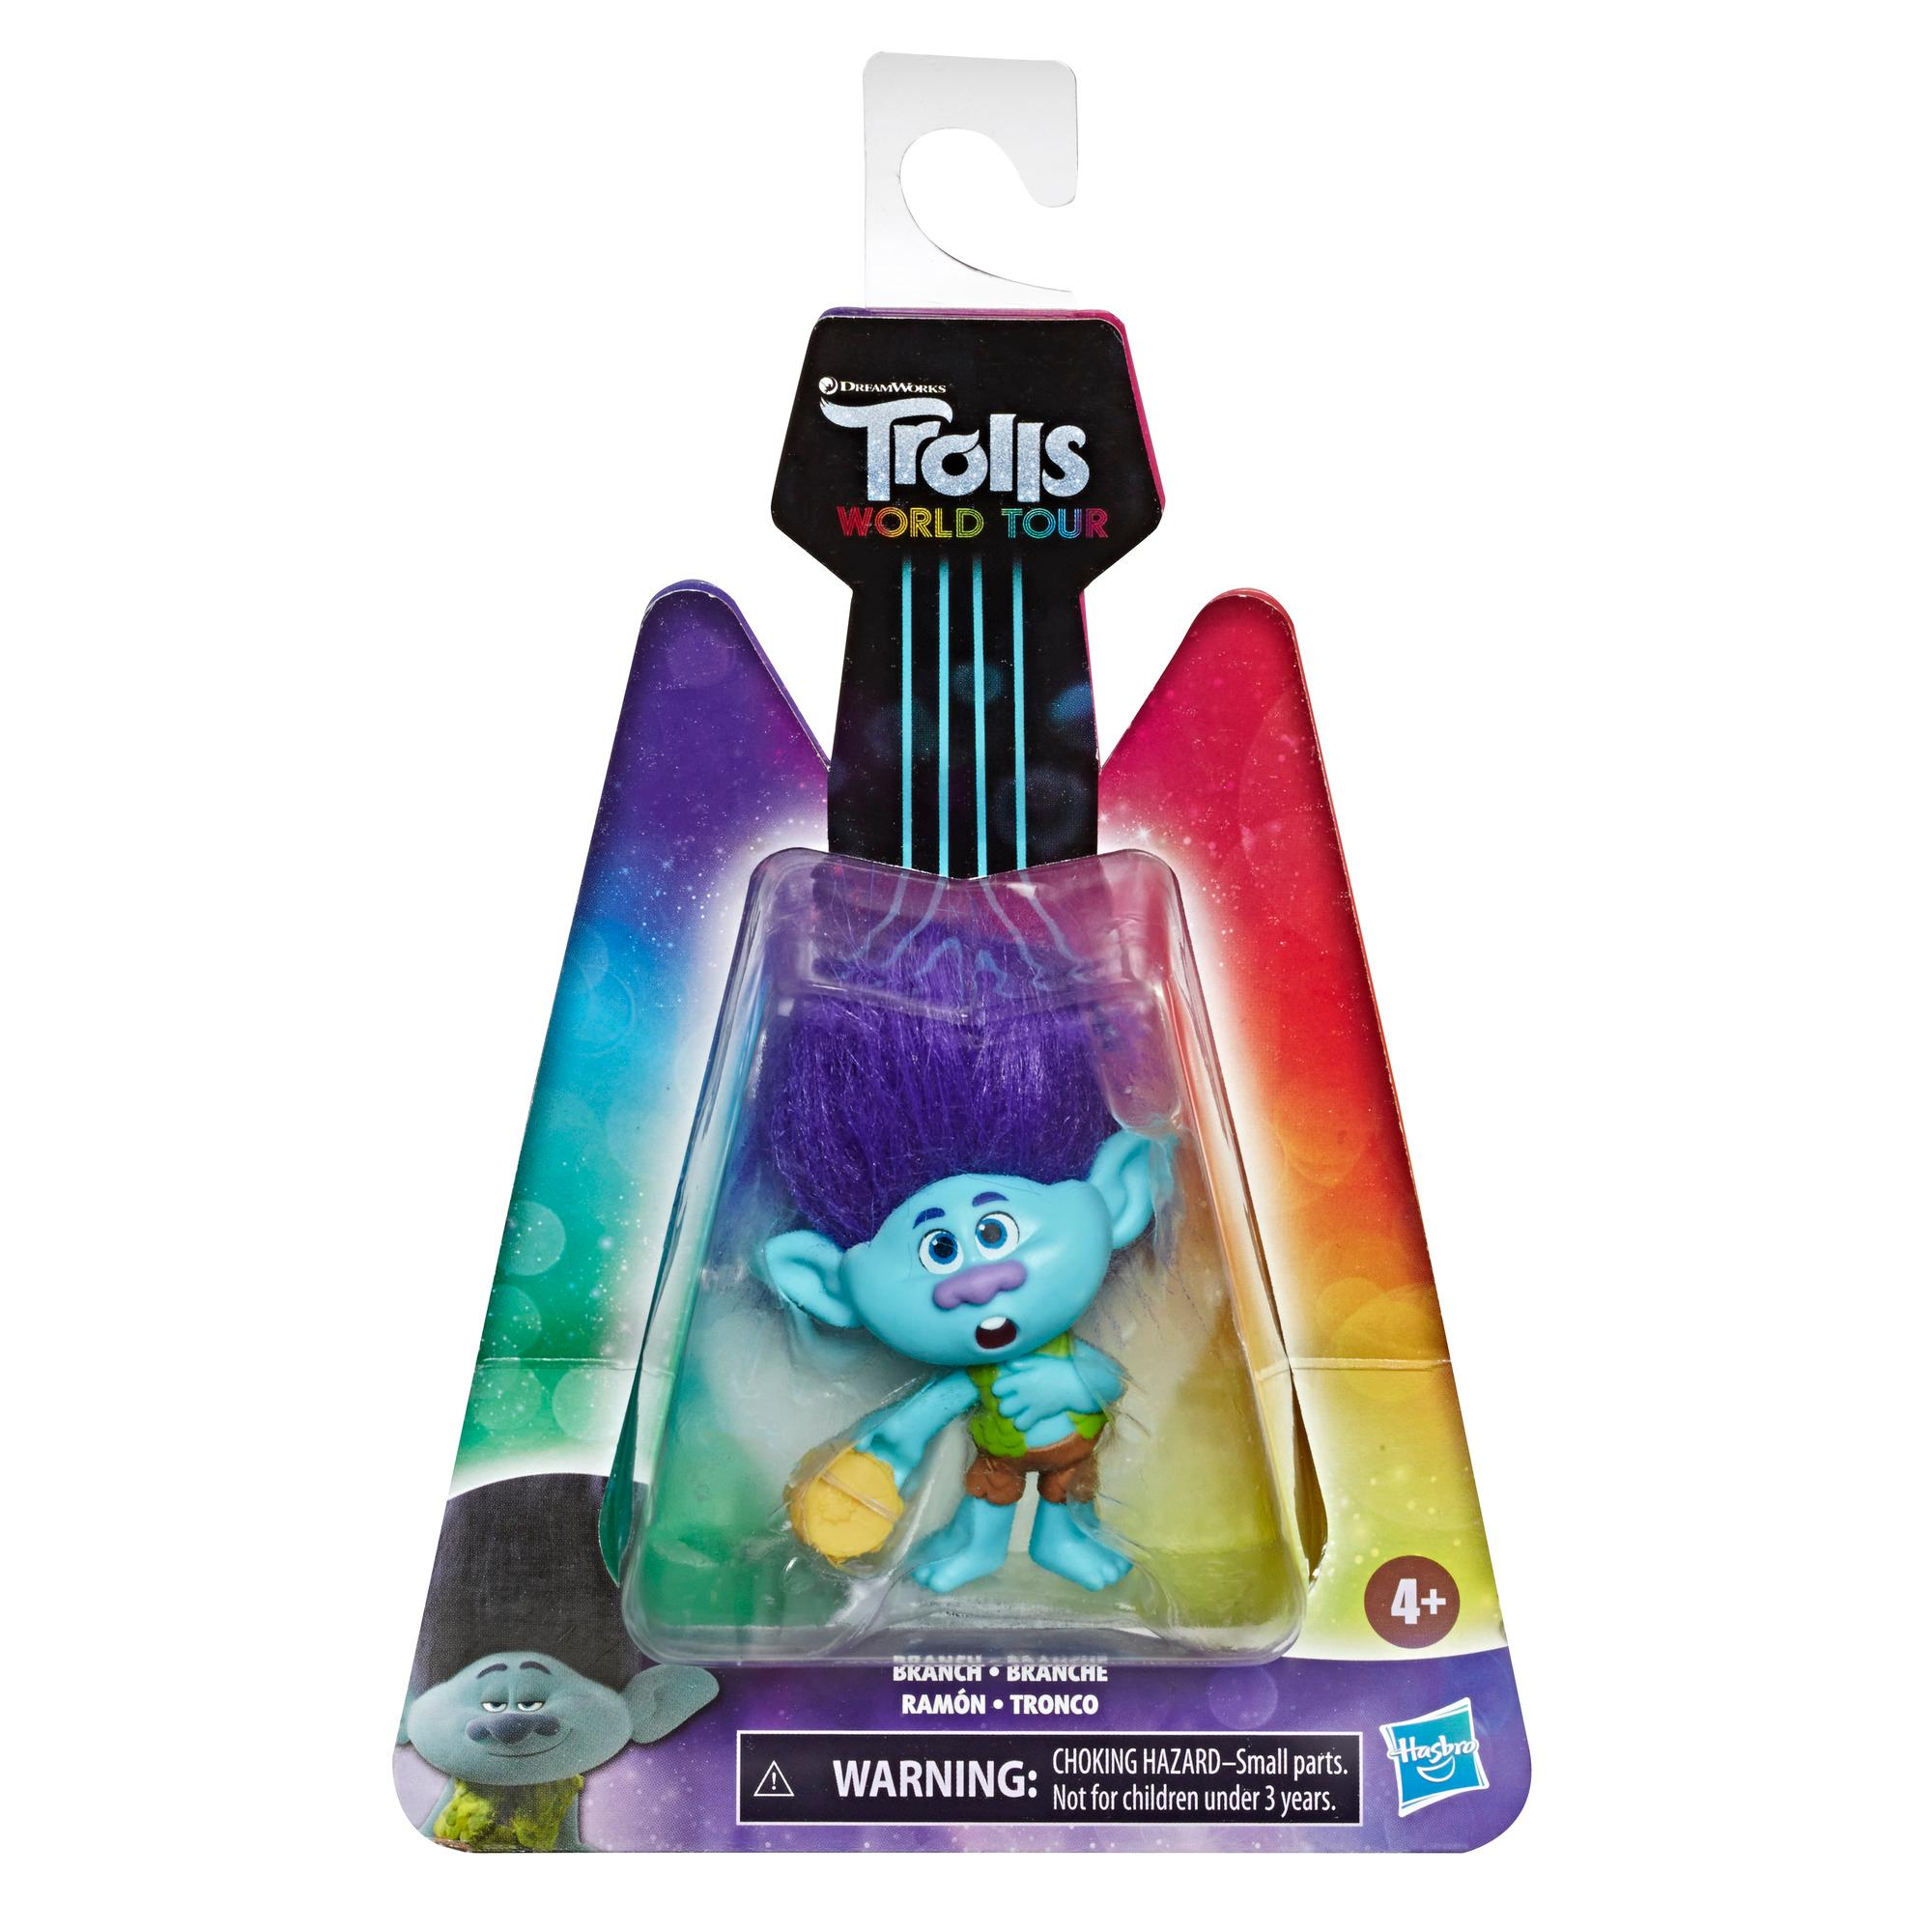 DreamWorks Trolls World Tour Branch